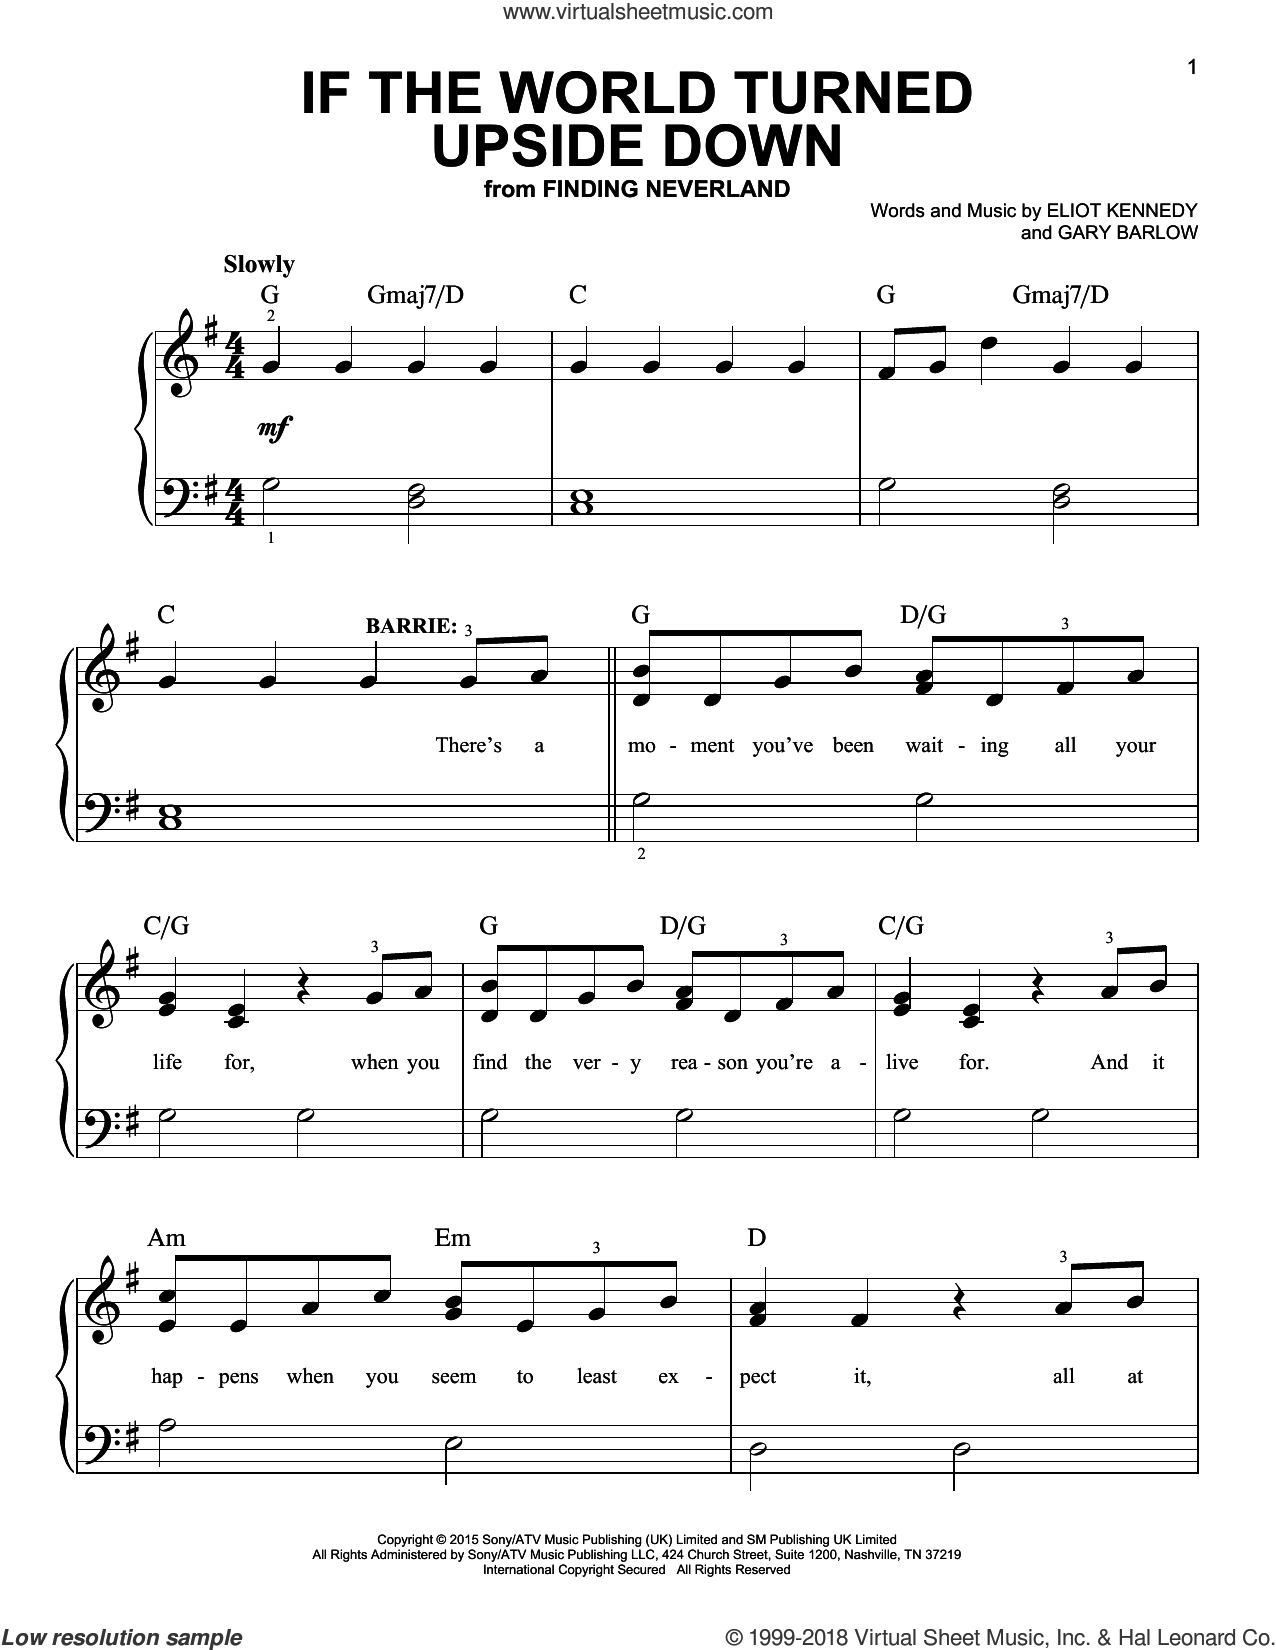 If The World Turned Upside Down sheet music for piano solo by Gary Barlow & Eliot Kennedy, Eliot Kennedy and Gary Barlow, easy skill level